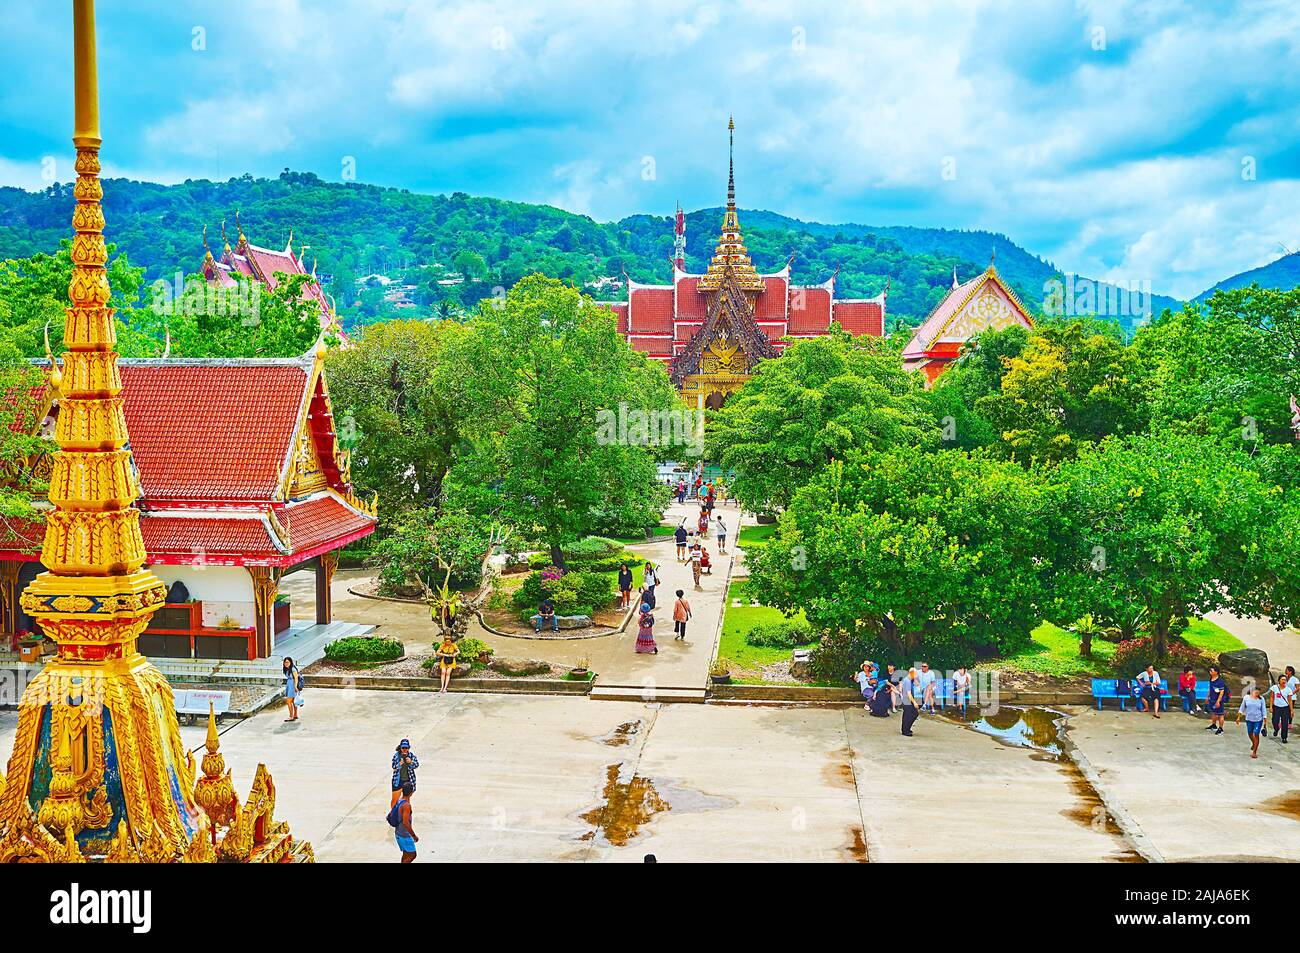 CHALONG, THAILAND - APRIL 30, 2019: Wat Chalong temple complex consists of shrines, pavilions and chedis, situated in lush tropical garden, on April 3 Stock Photo